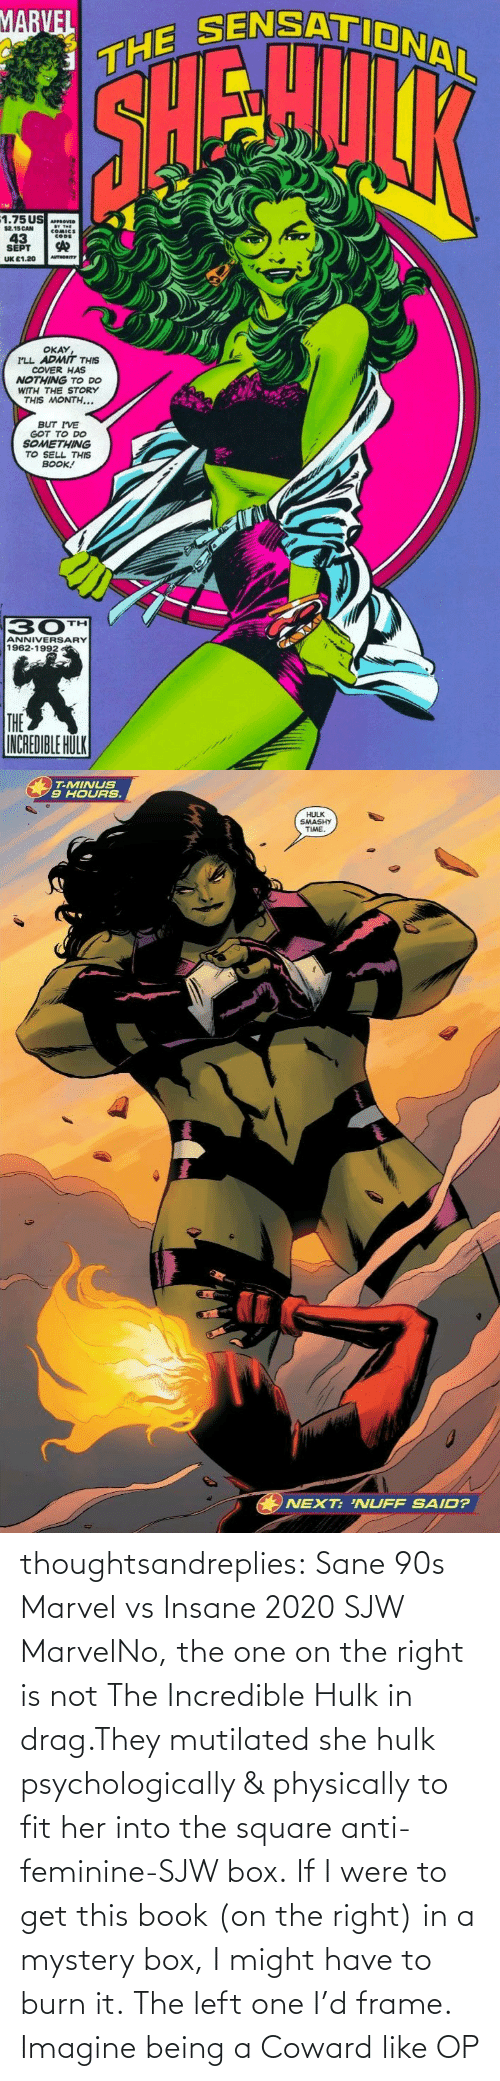 imagine: thoughtsandreplies:  Sane 90s Marvel vs Insane 2020 SJW MarvelNo, the one on the right is not The Incredible Hulk in drag.They mutilated she hulk psychologically & physically to fit her into the square anti-feminine-SJW box. If I were to get this book (on the right) in a mystery box, I might have to burn it. The left one I'd frame.    Imagine being a Coward like OP